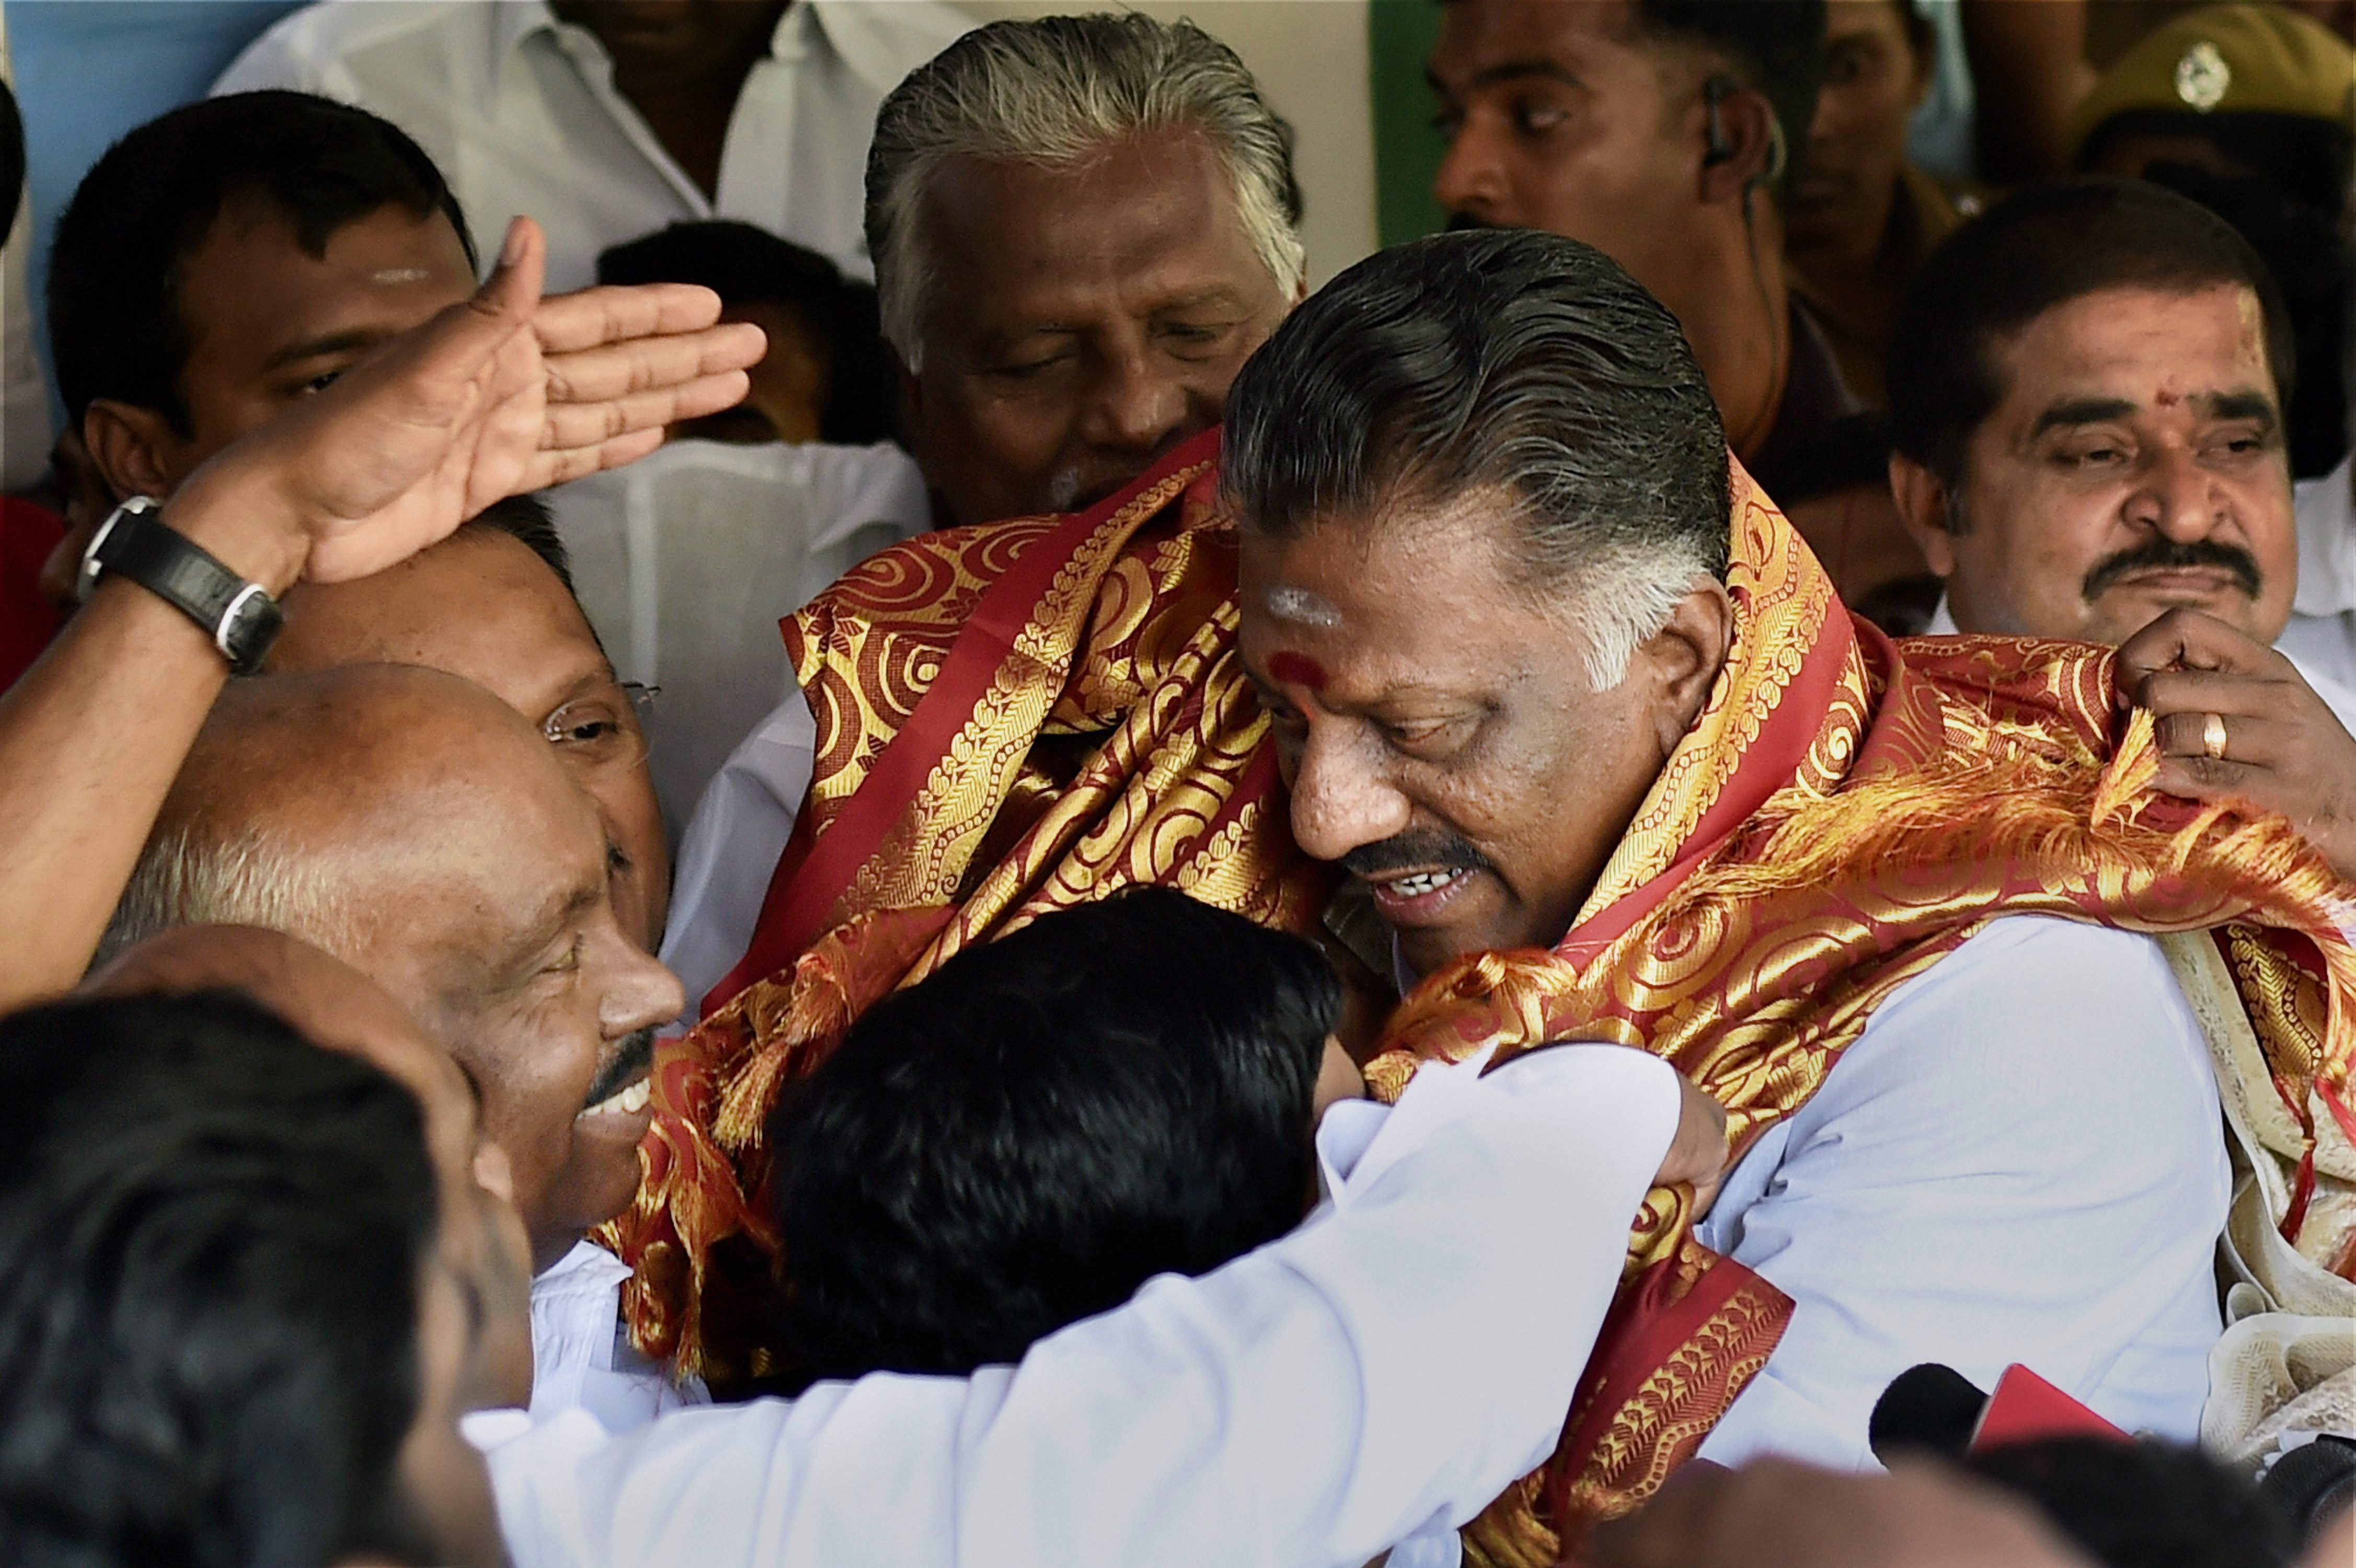 Tamil Nadu Chief Minister O. Panneerselvam being greeted by AIADMK founding leader and former speaker of the state assembly P.H. Pandian at his residence in Chennai on Wednesday. Credit: PTI/R. Senthil Kumar